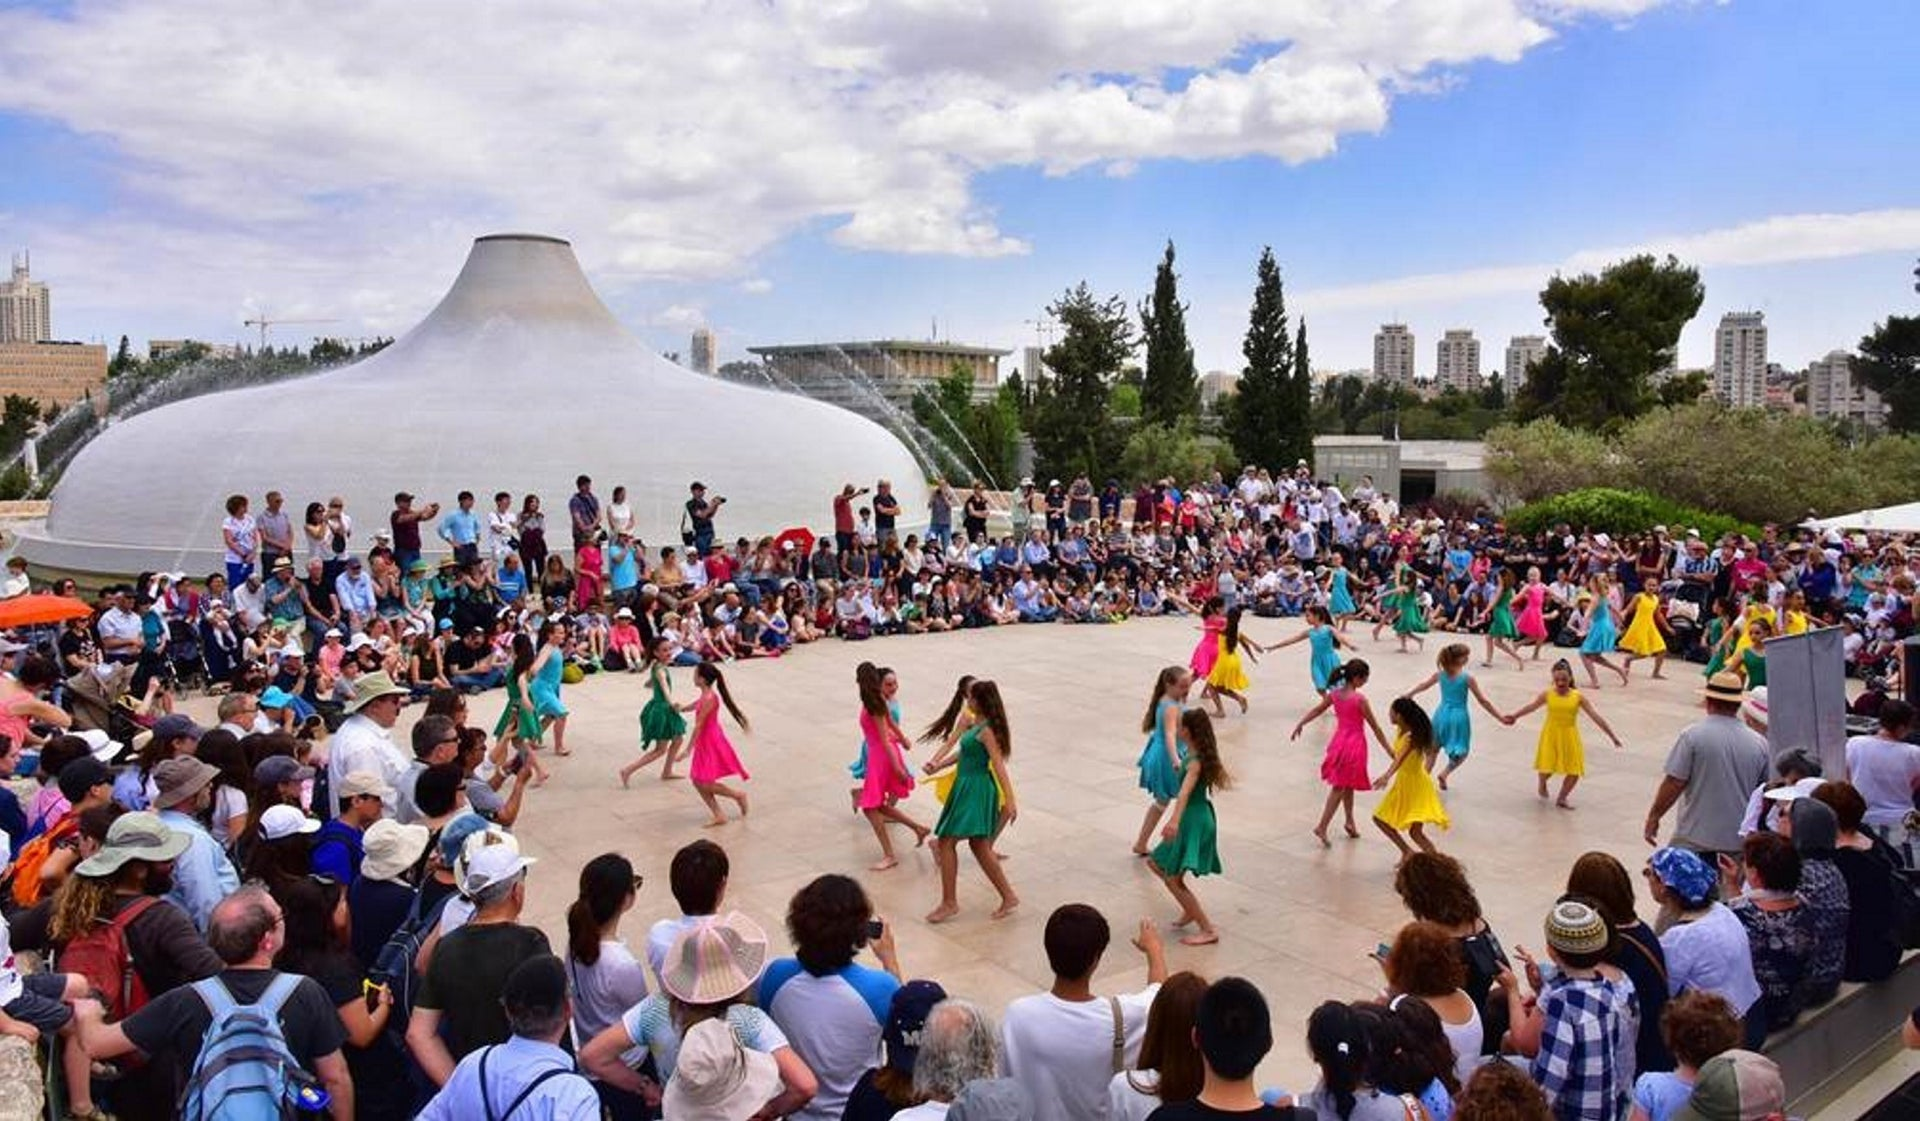 Independence Day celebration at the Israel Museum.